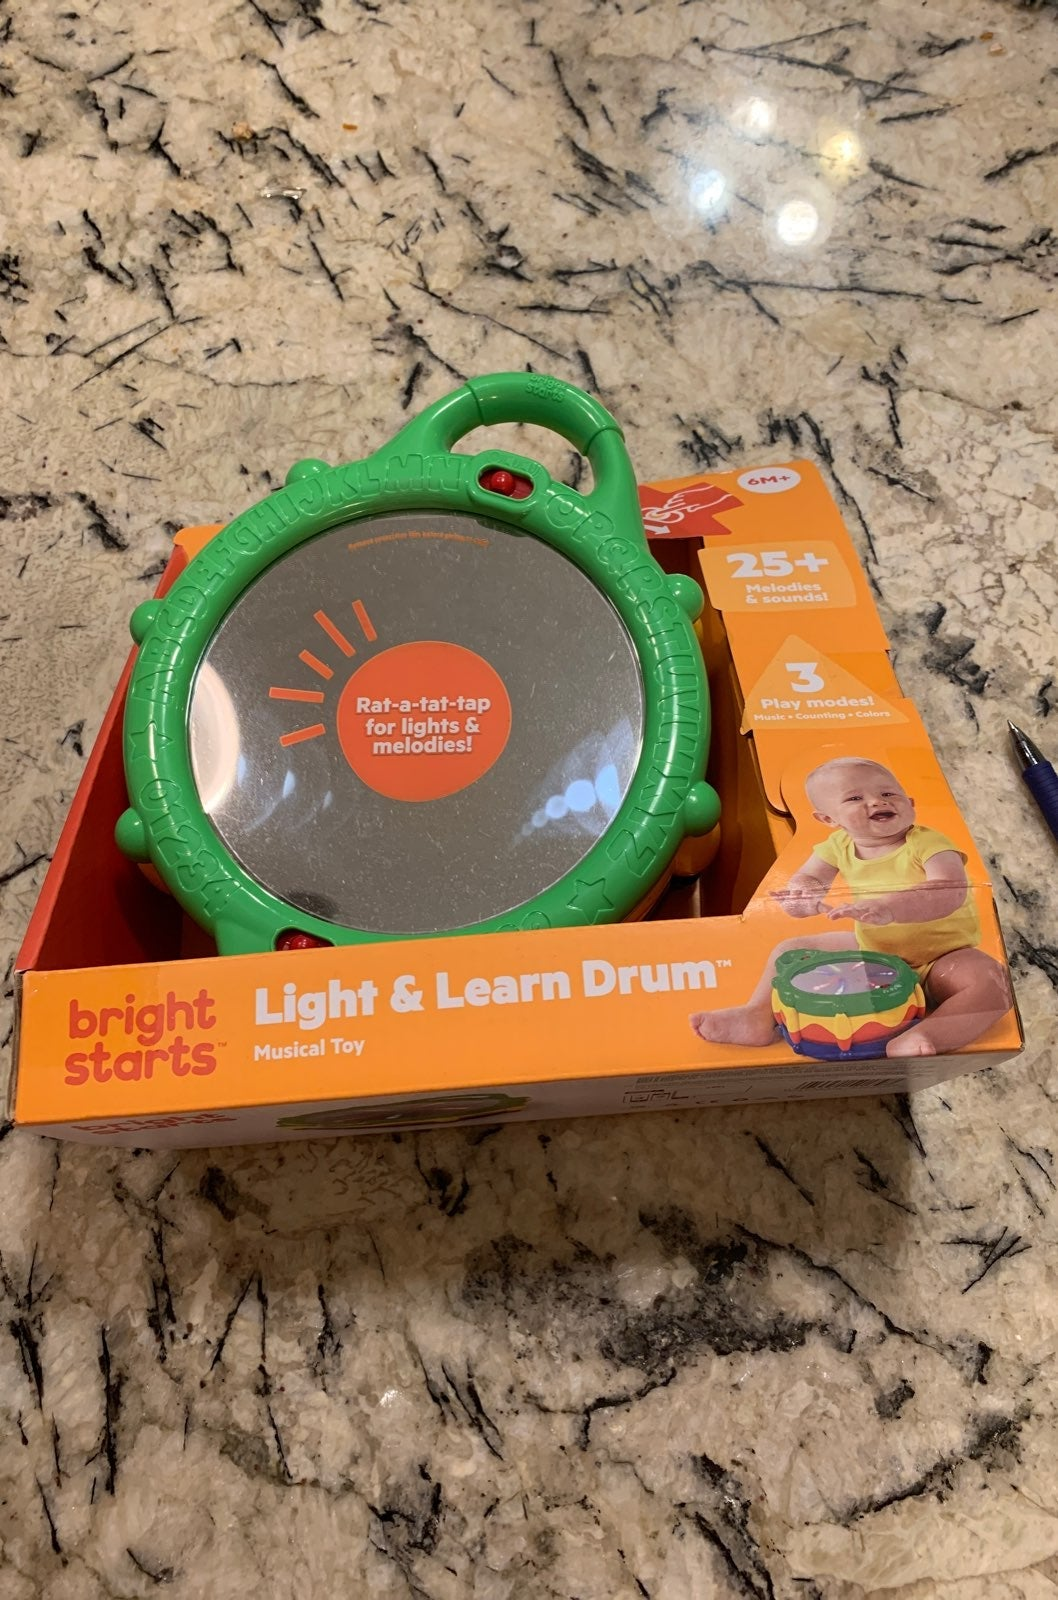 Bright starts light and learn drum